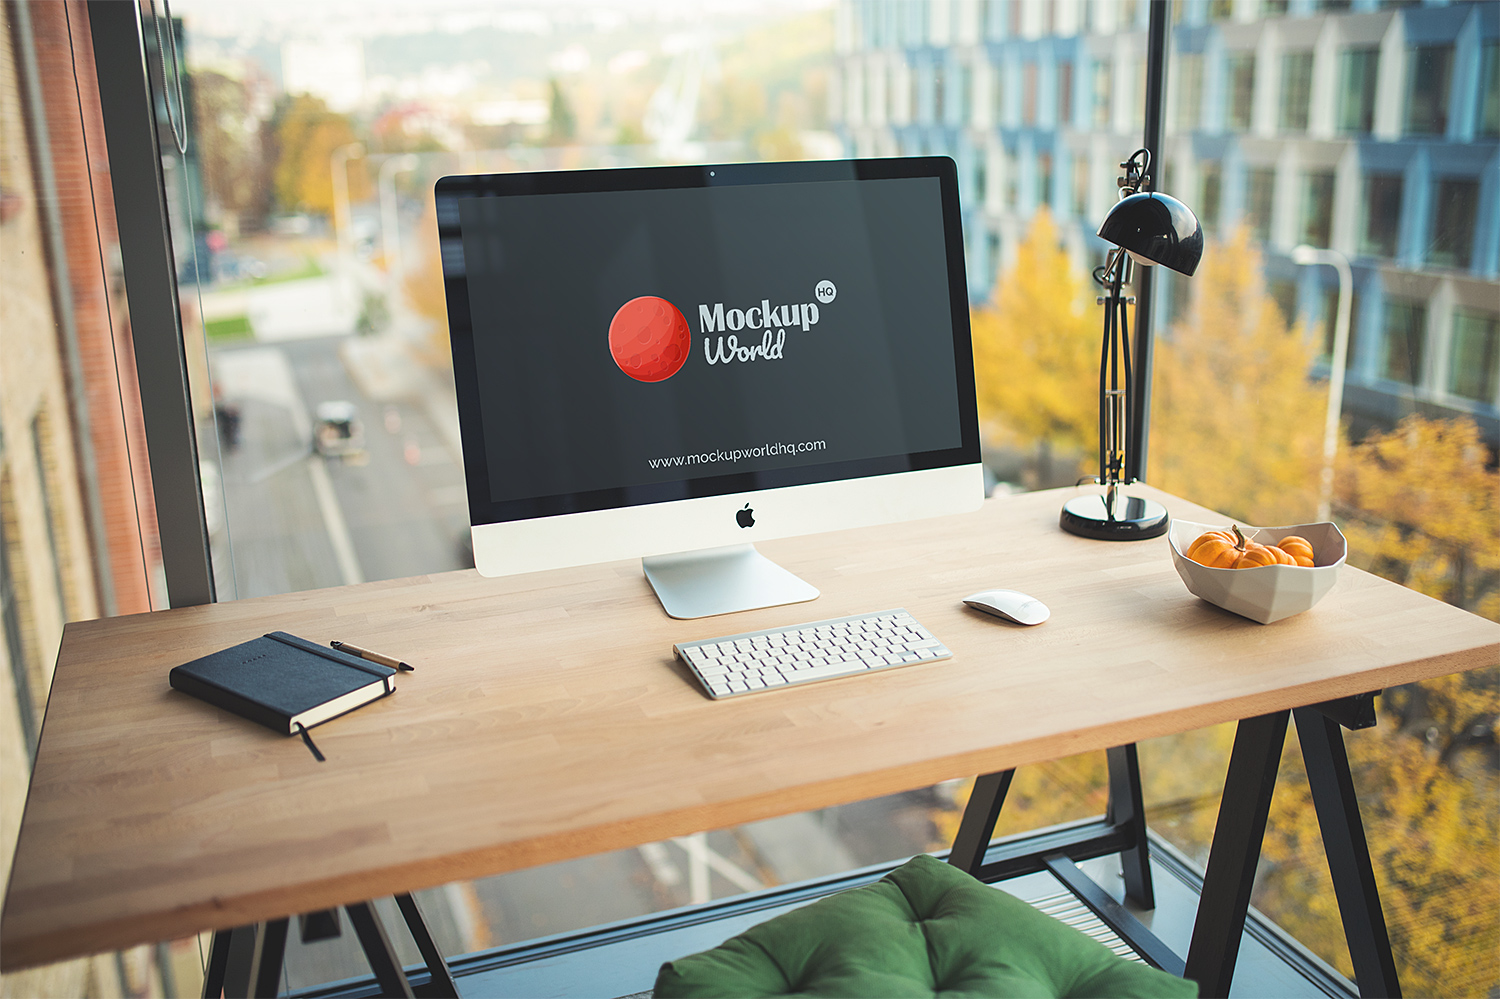 iMac Business Office Mock Up Free